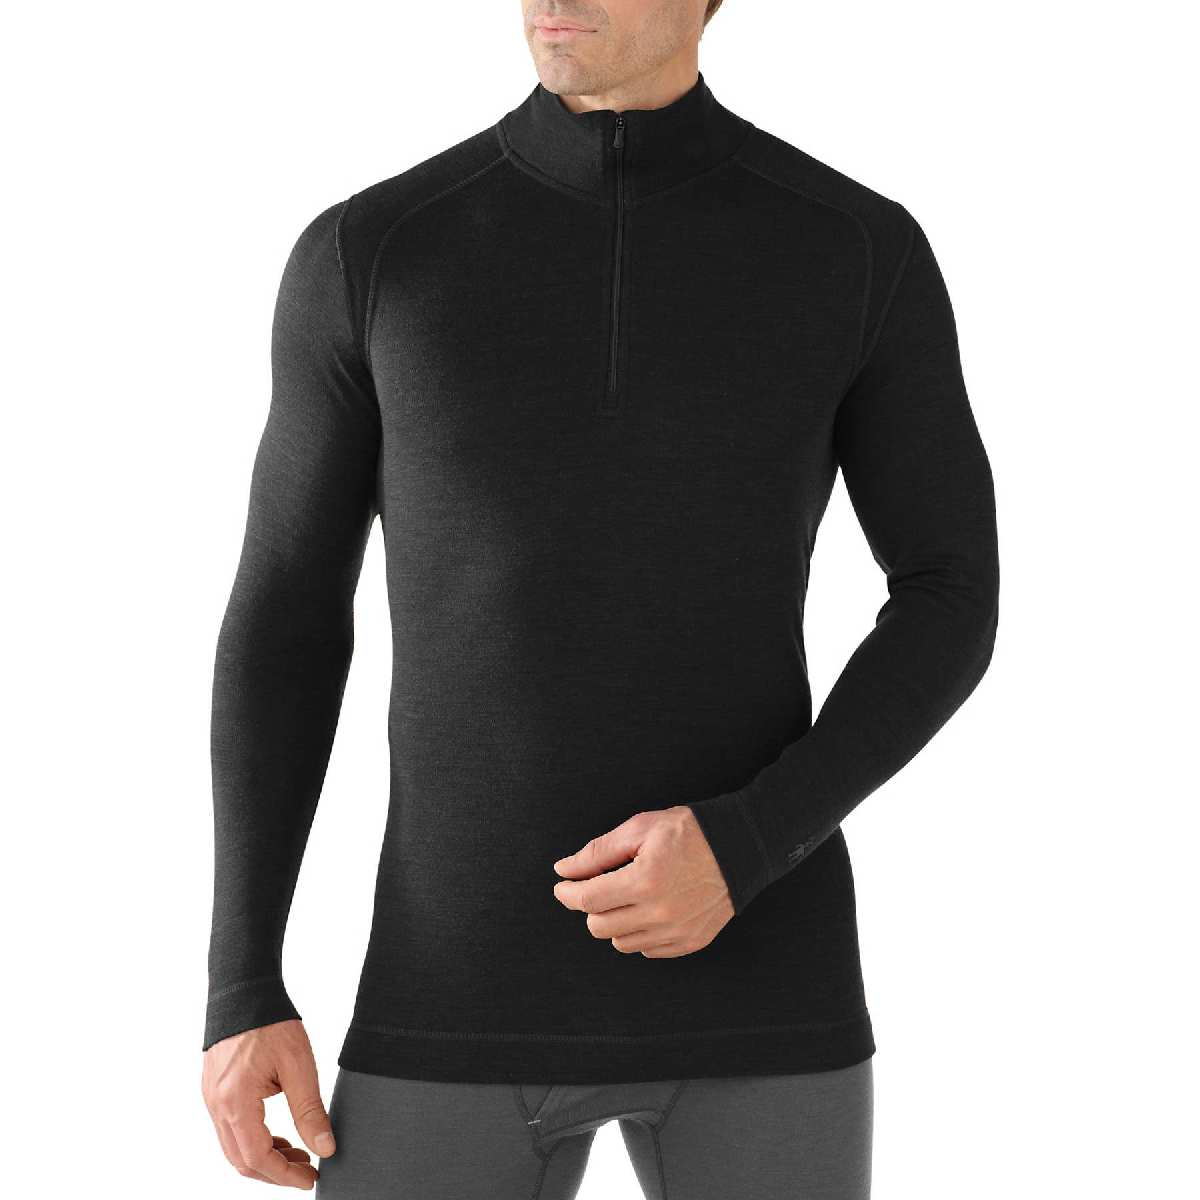 SmartWool NTS Mid 250 Zip T Long Sleeve Base Layer Men's Size S Black U.S.A. & Canada